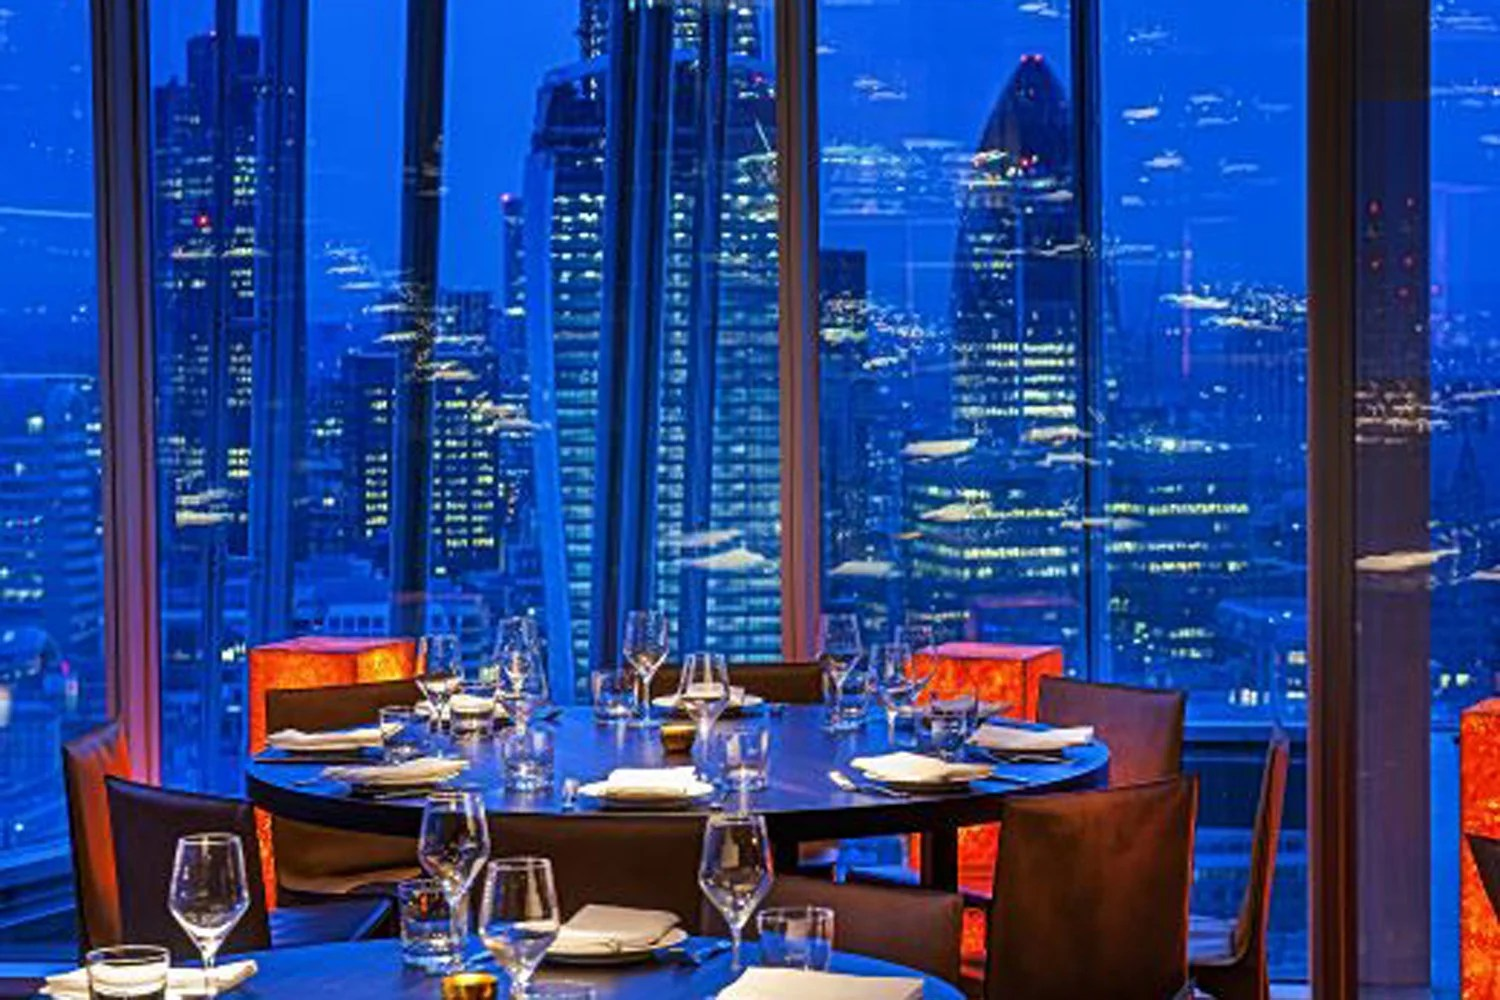 Good Evening Hd Wallpaper Food With A View Londoners Get A Taste For Skyscraper